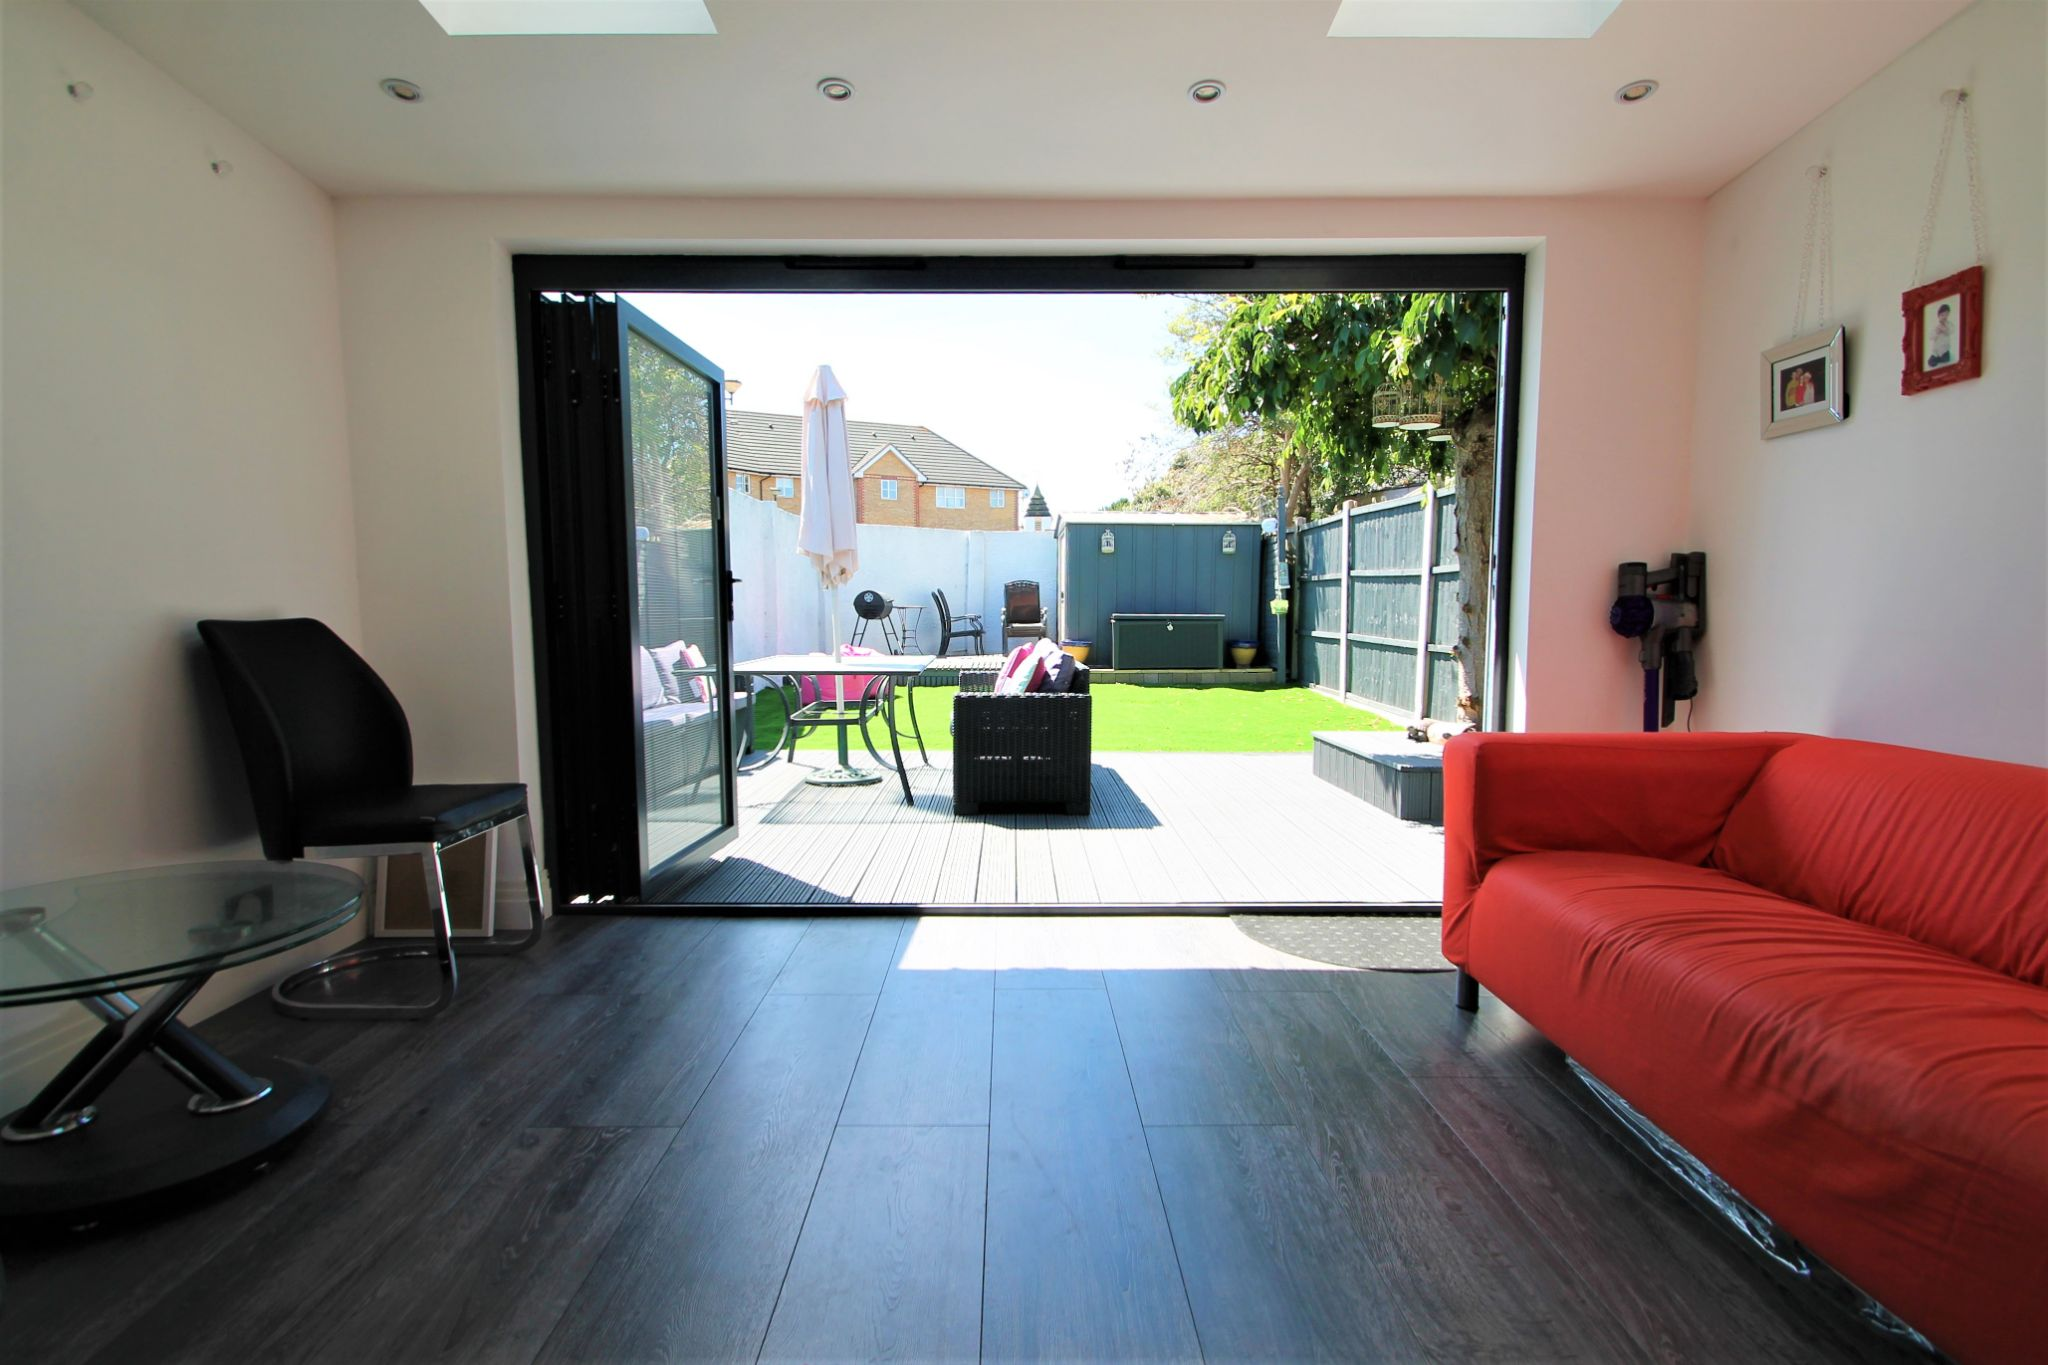 3 Bedroom Semi-detached House For Sale - Family Room